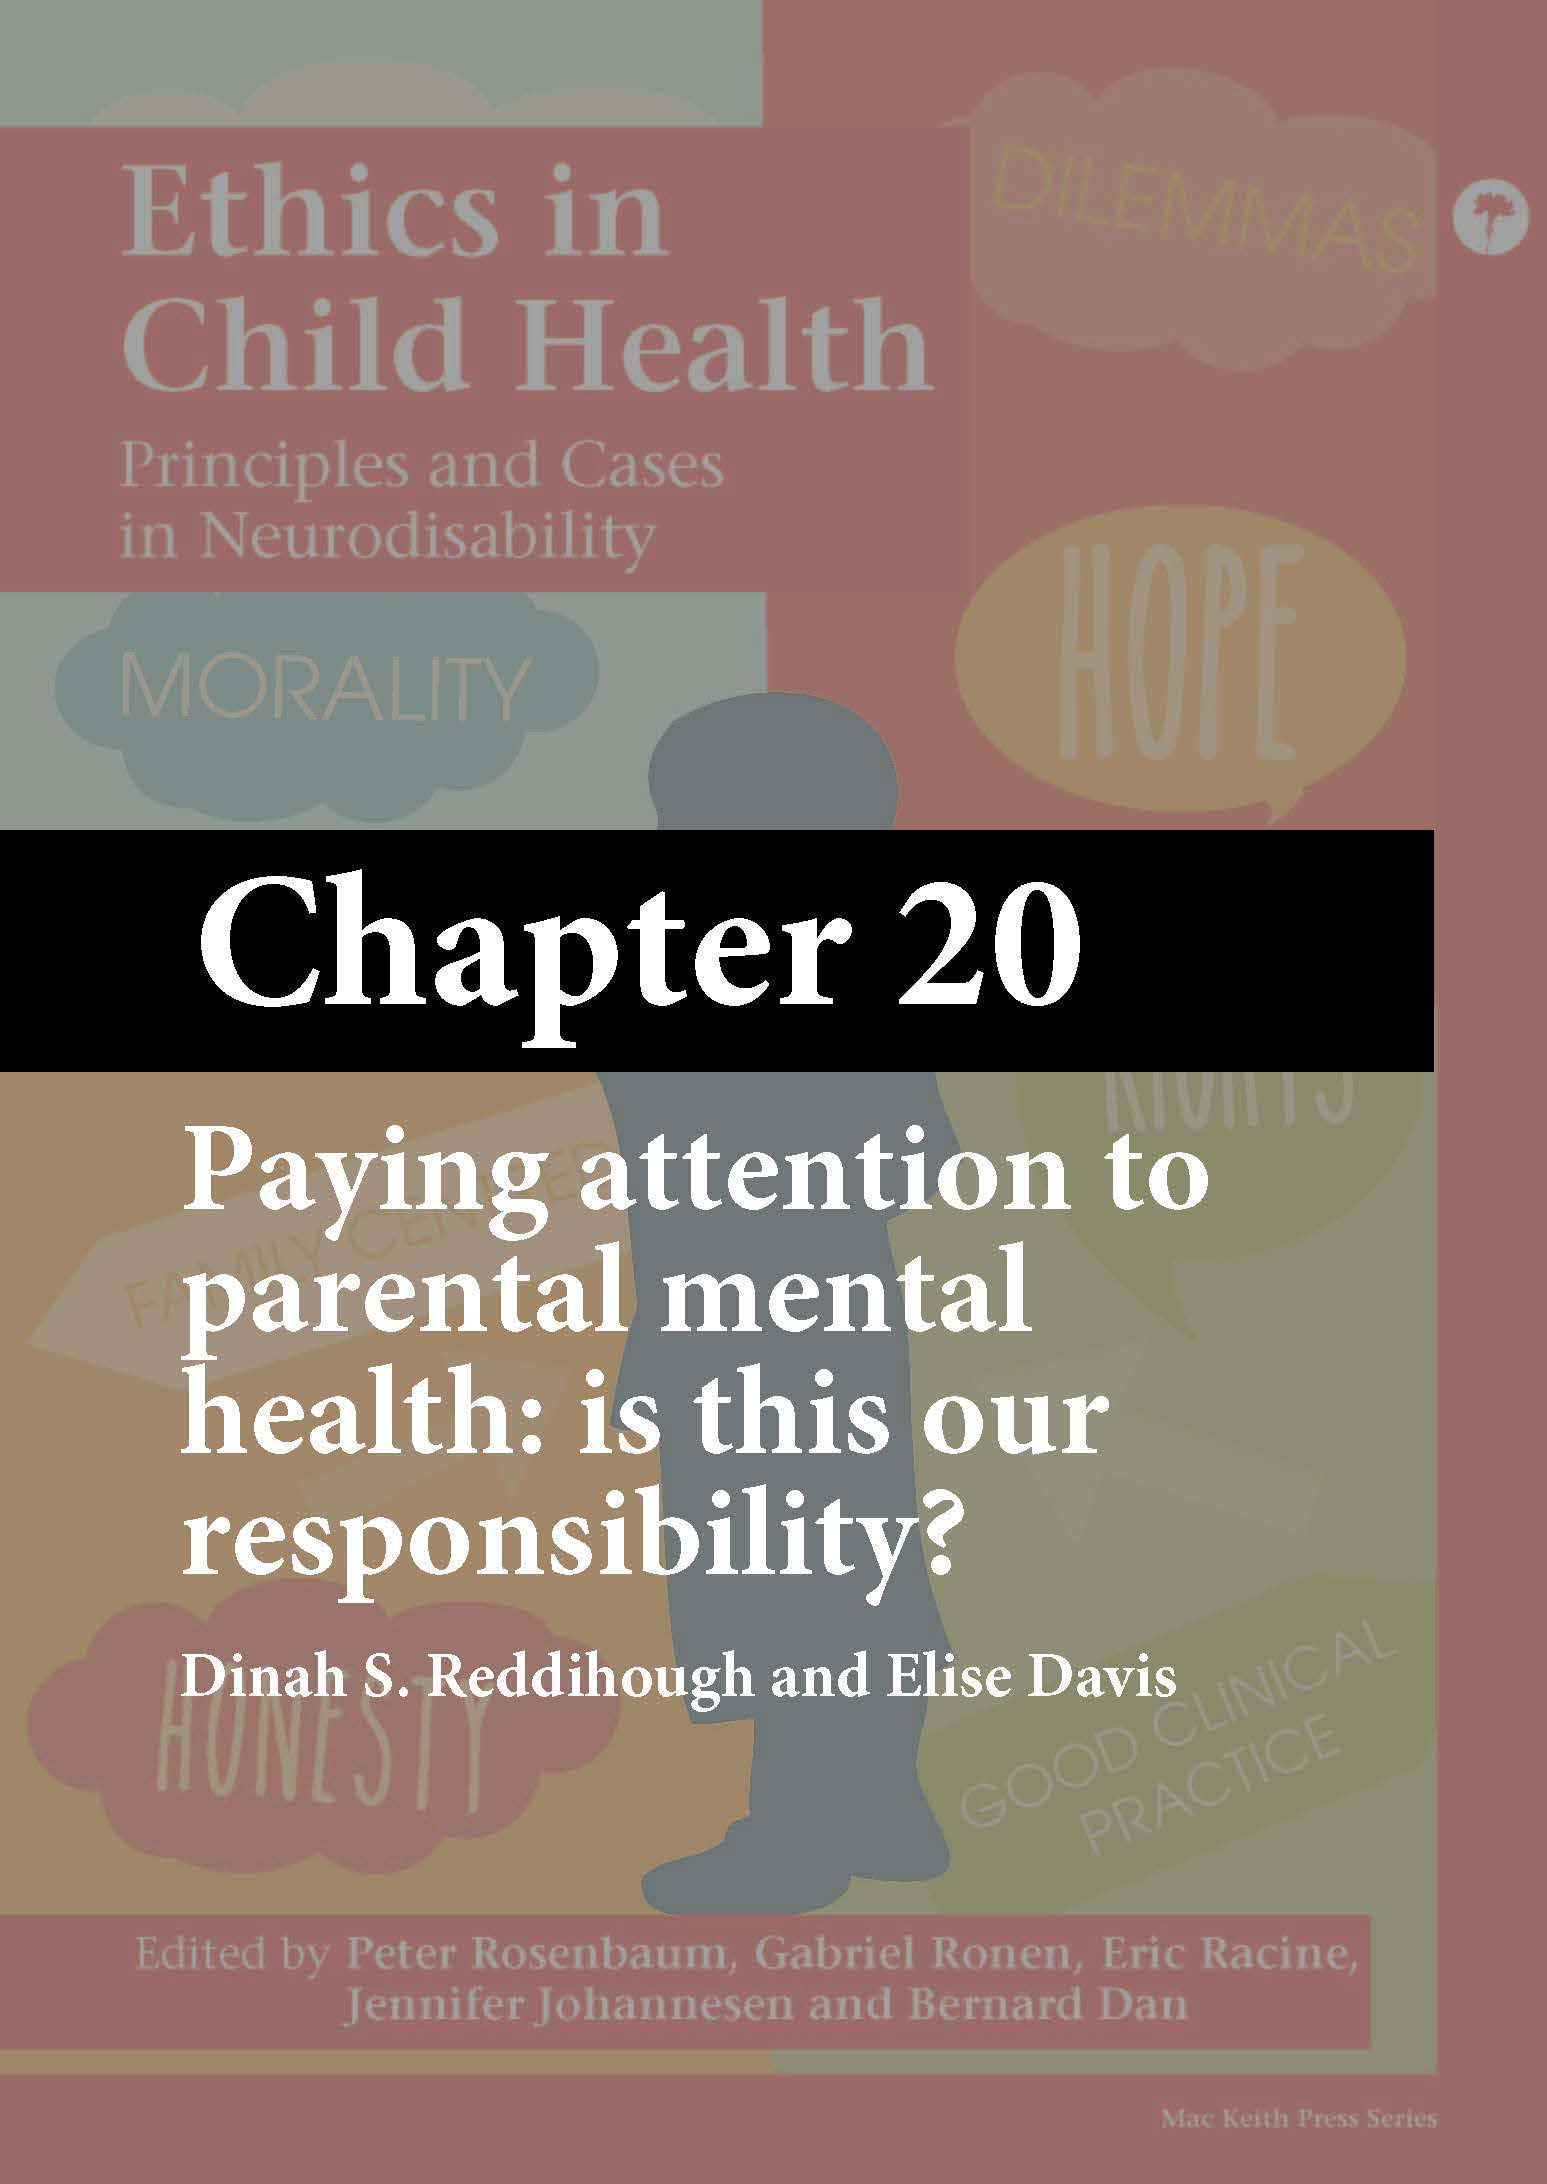 Ethics in Child Health, Rosenbaum, Chapter 20 cover